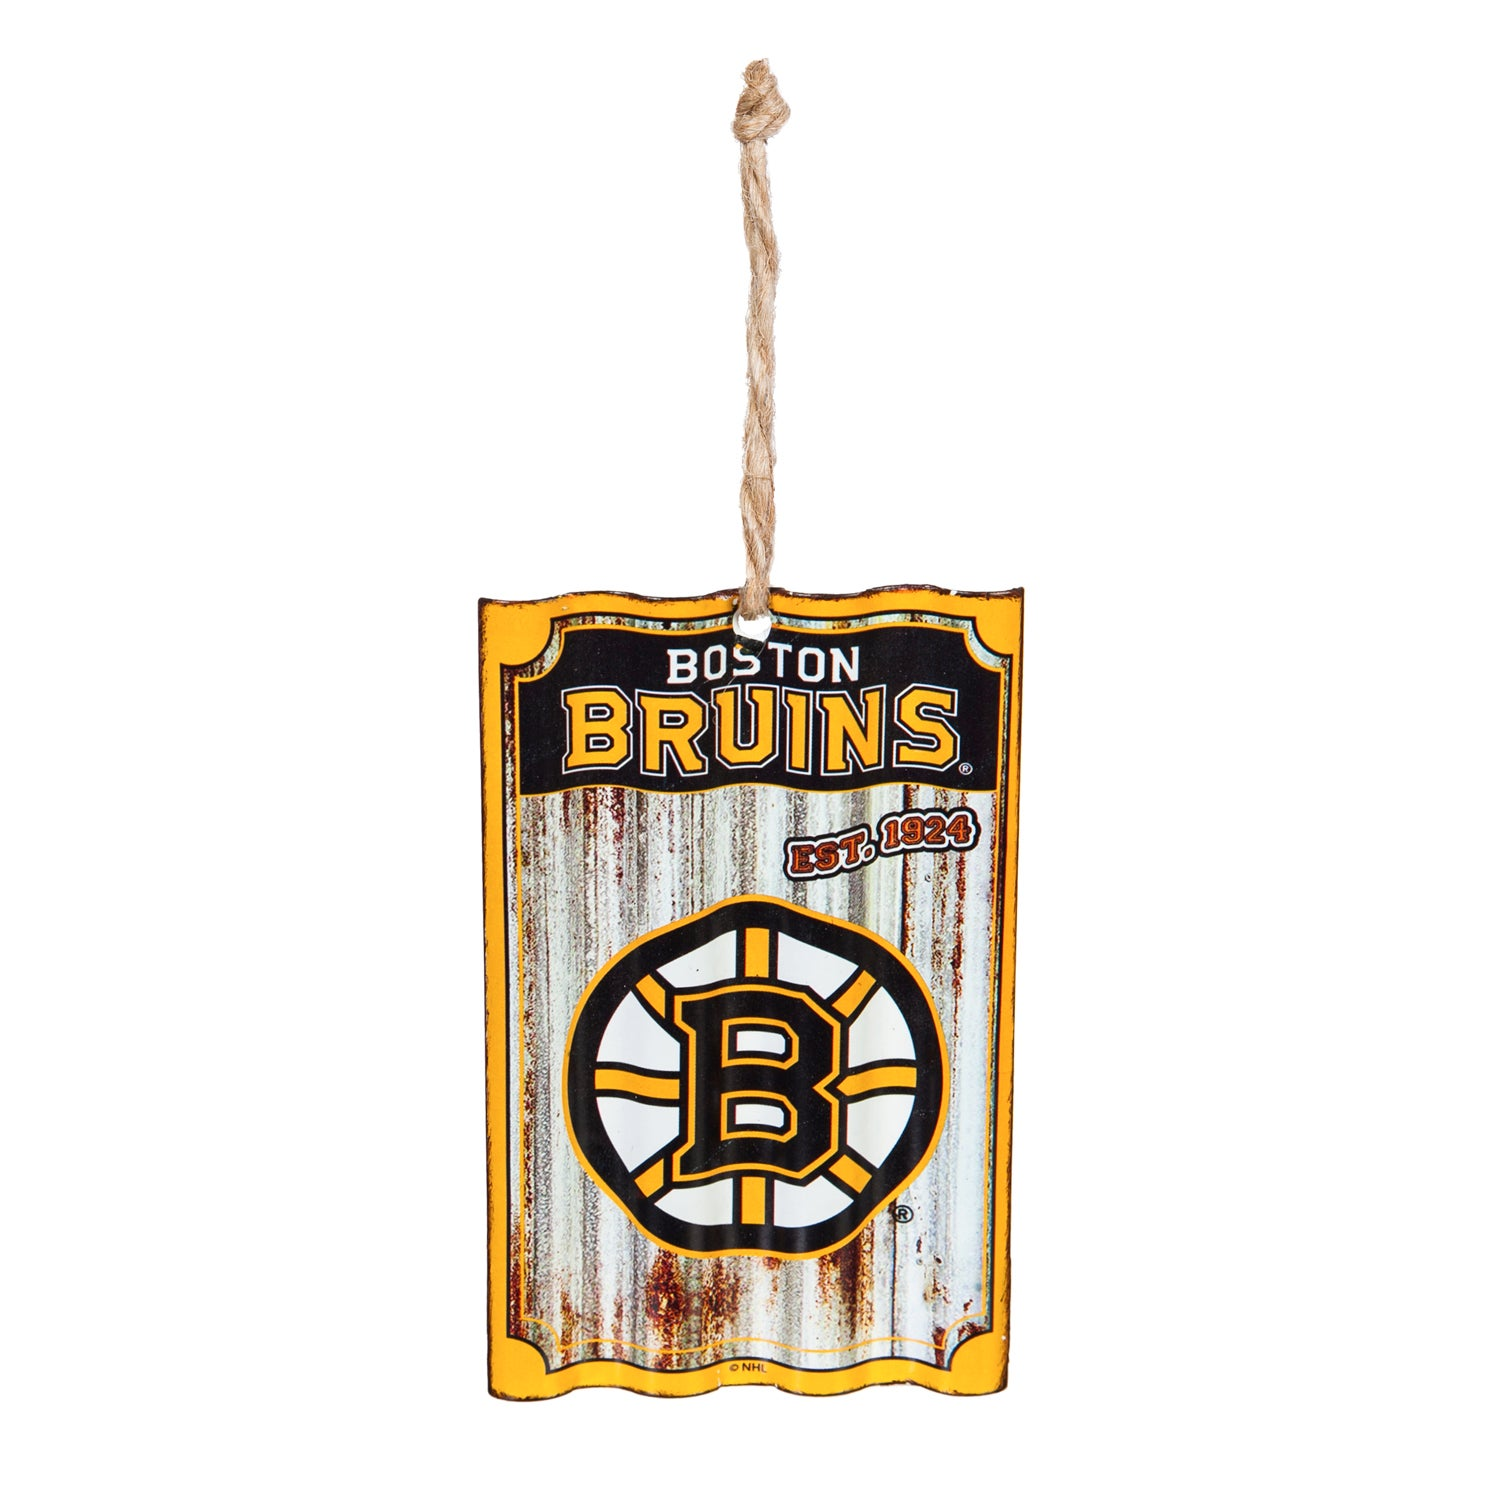 Boston Bruins Corrugated Metal Ornament